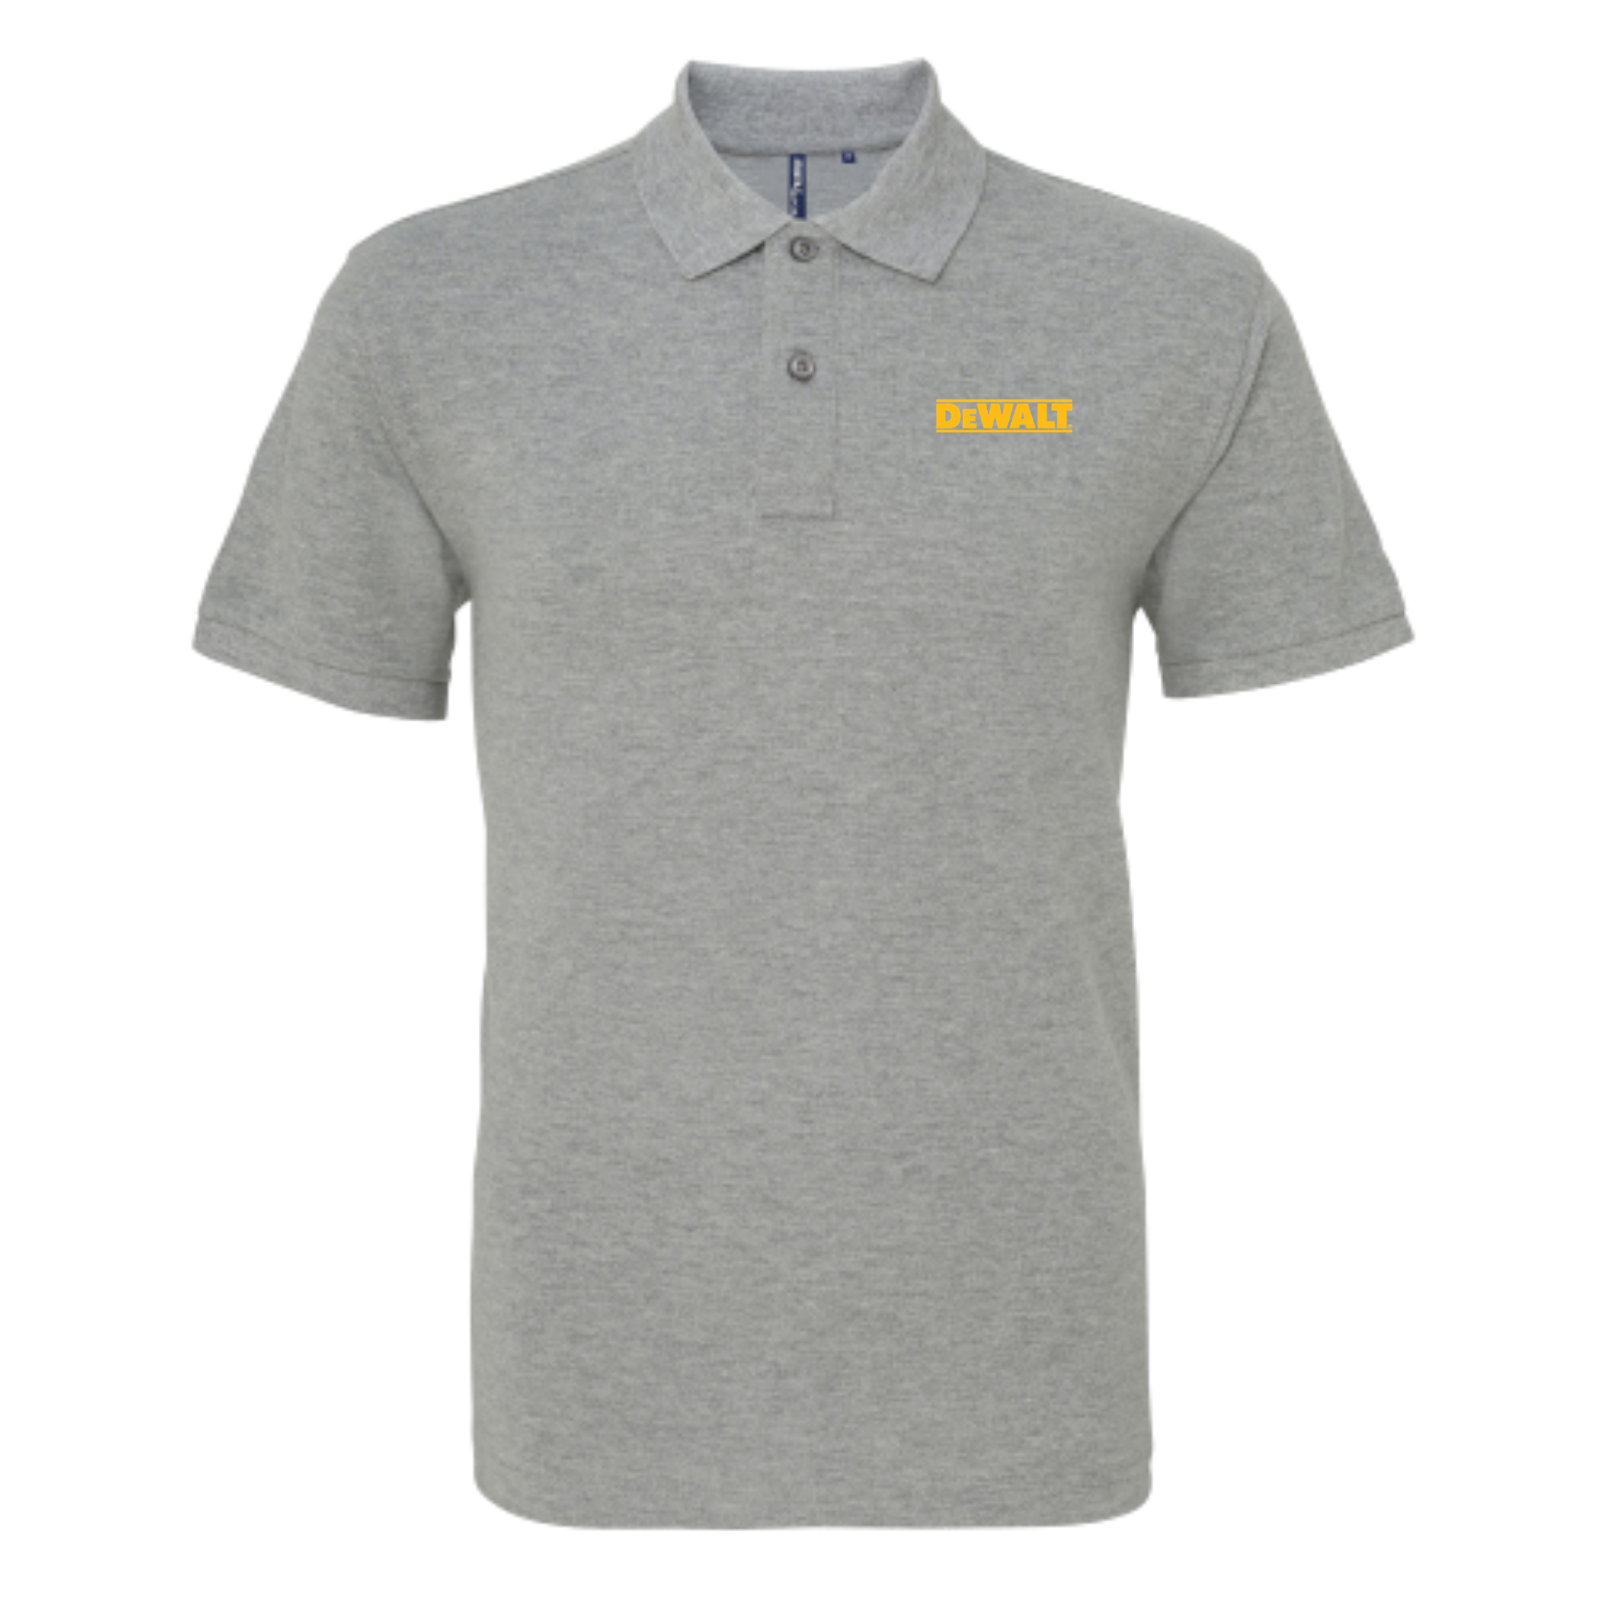 DeWalt SUMMER Embroidered Polo Shirt New Personalised Gift